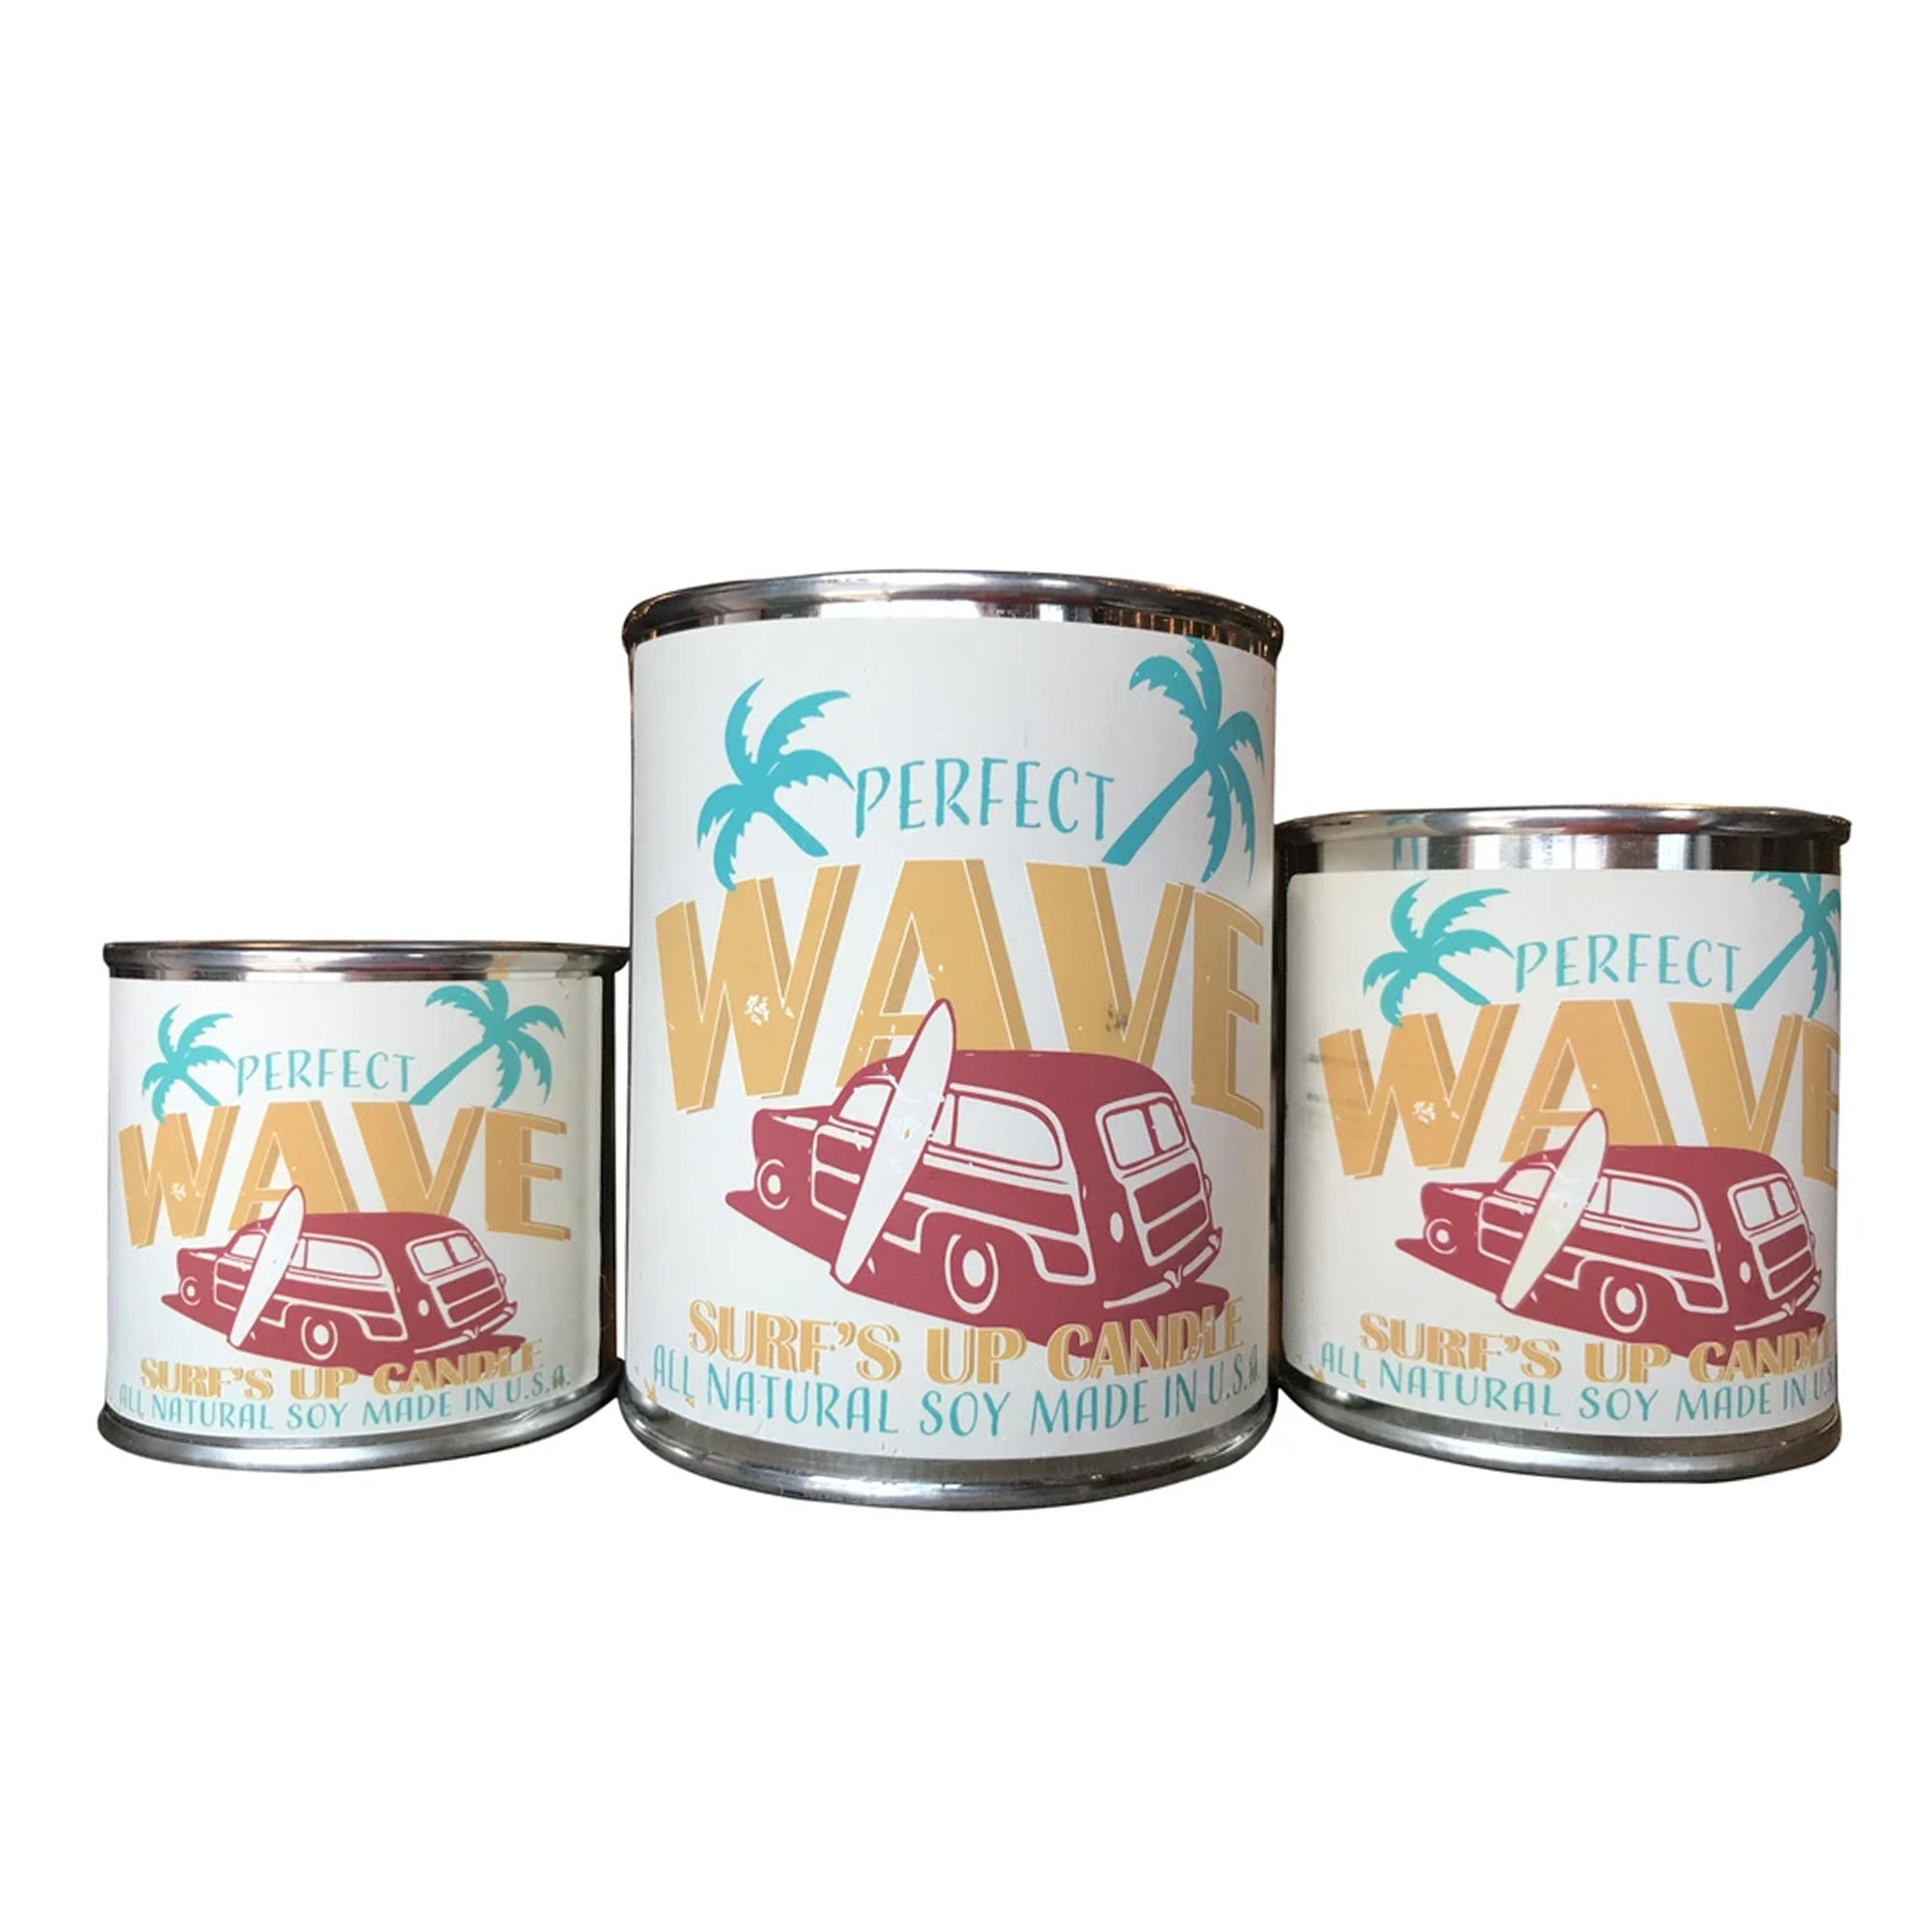 Surf's Up Paint Can Soy Candle - Perfect Wave